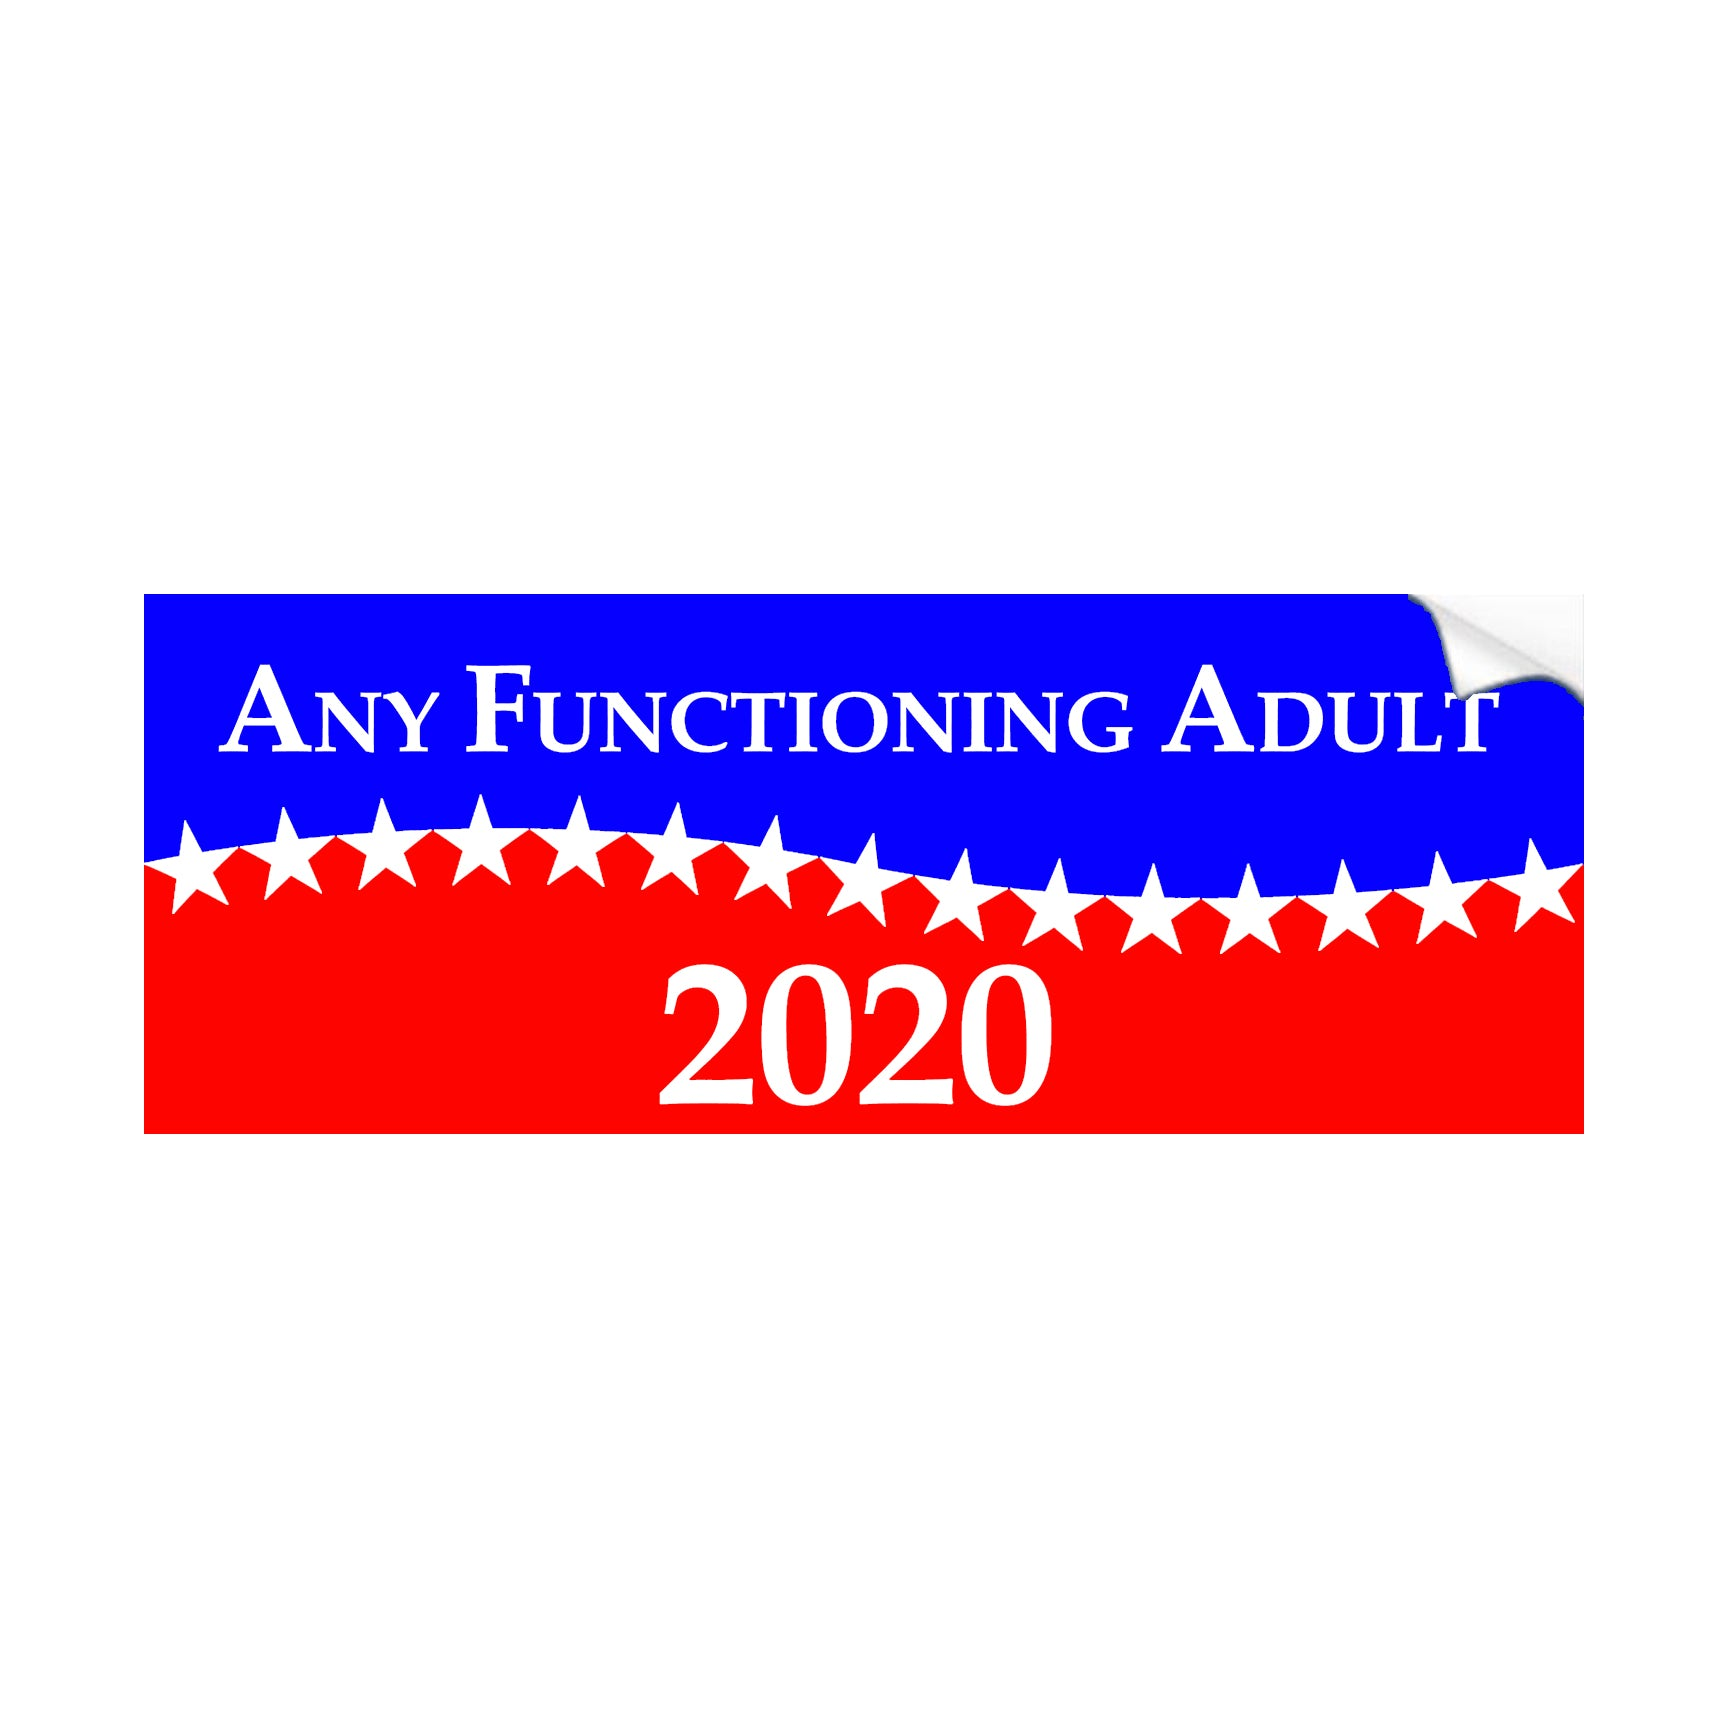 Any Functioning Adult 2020 Election Bumper Stickers - 3 pack